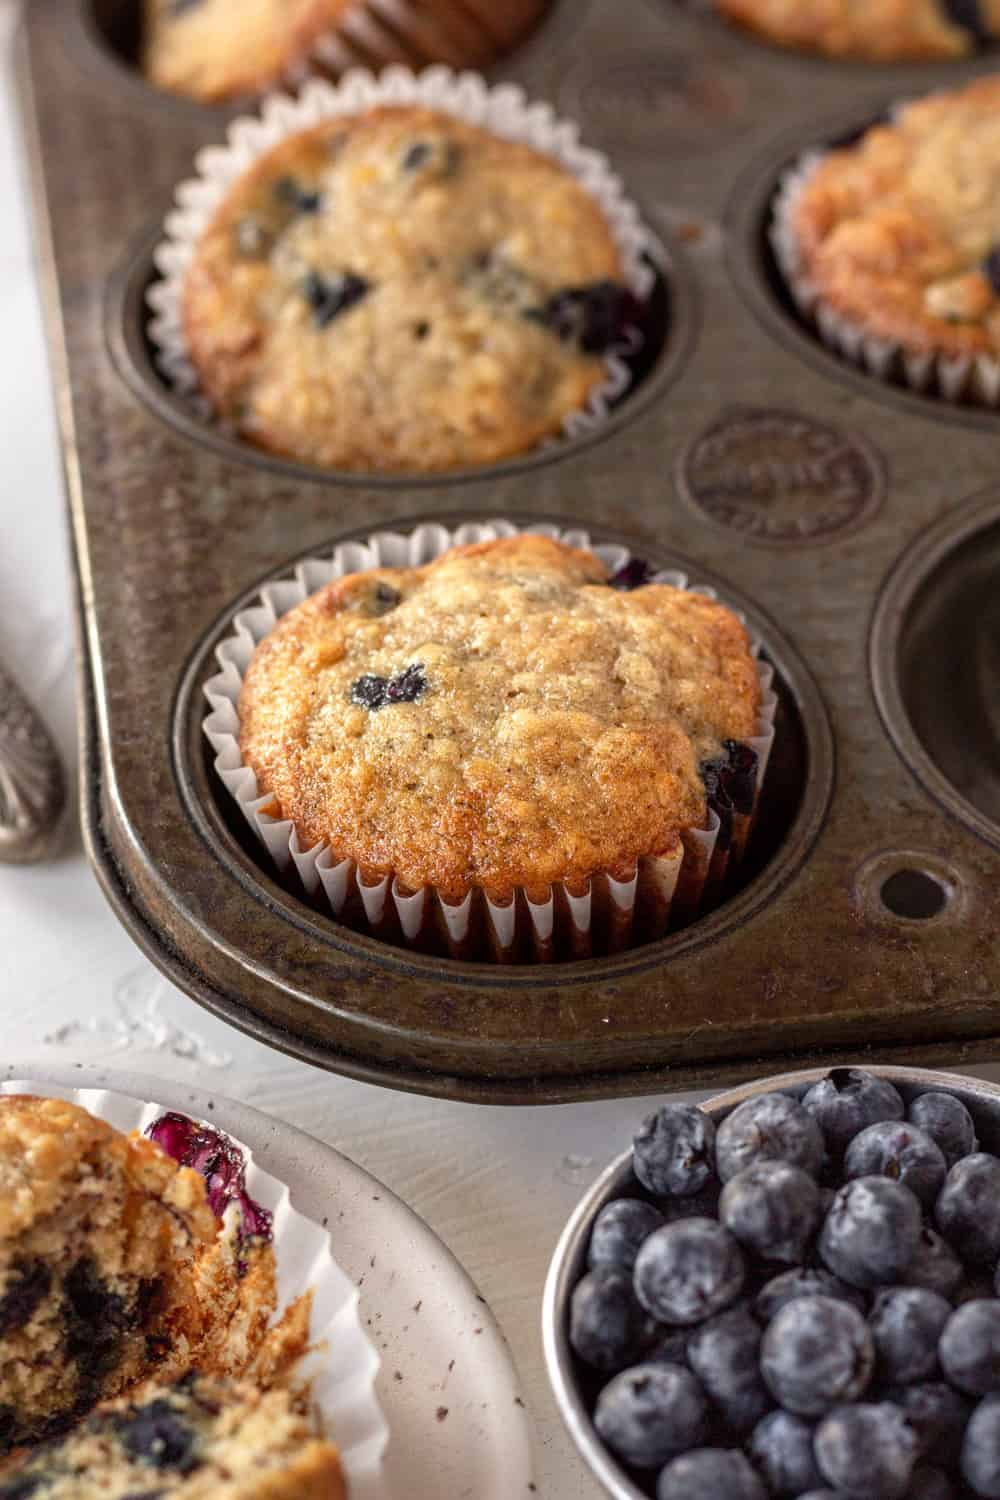 A muffin tin with baked banana blueberry muffins in it with a bowl of blueberries next to it.